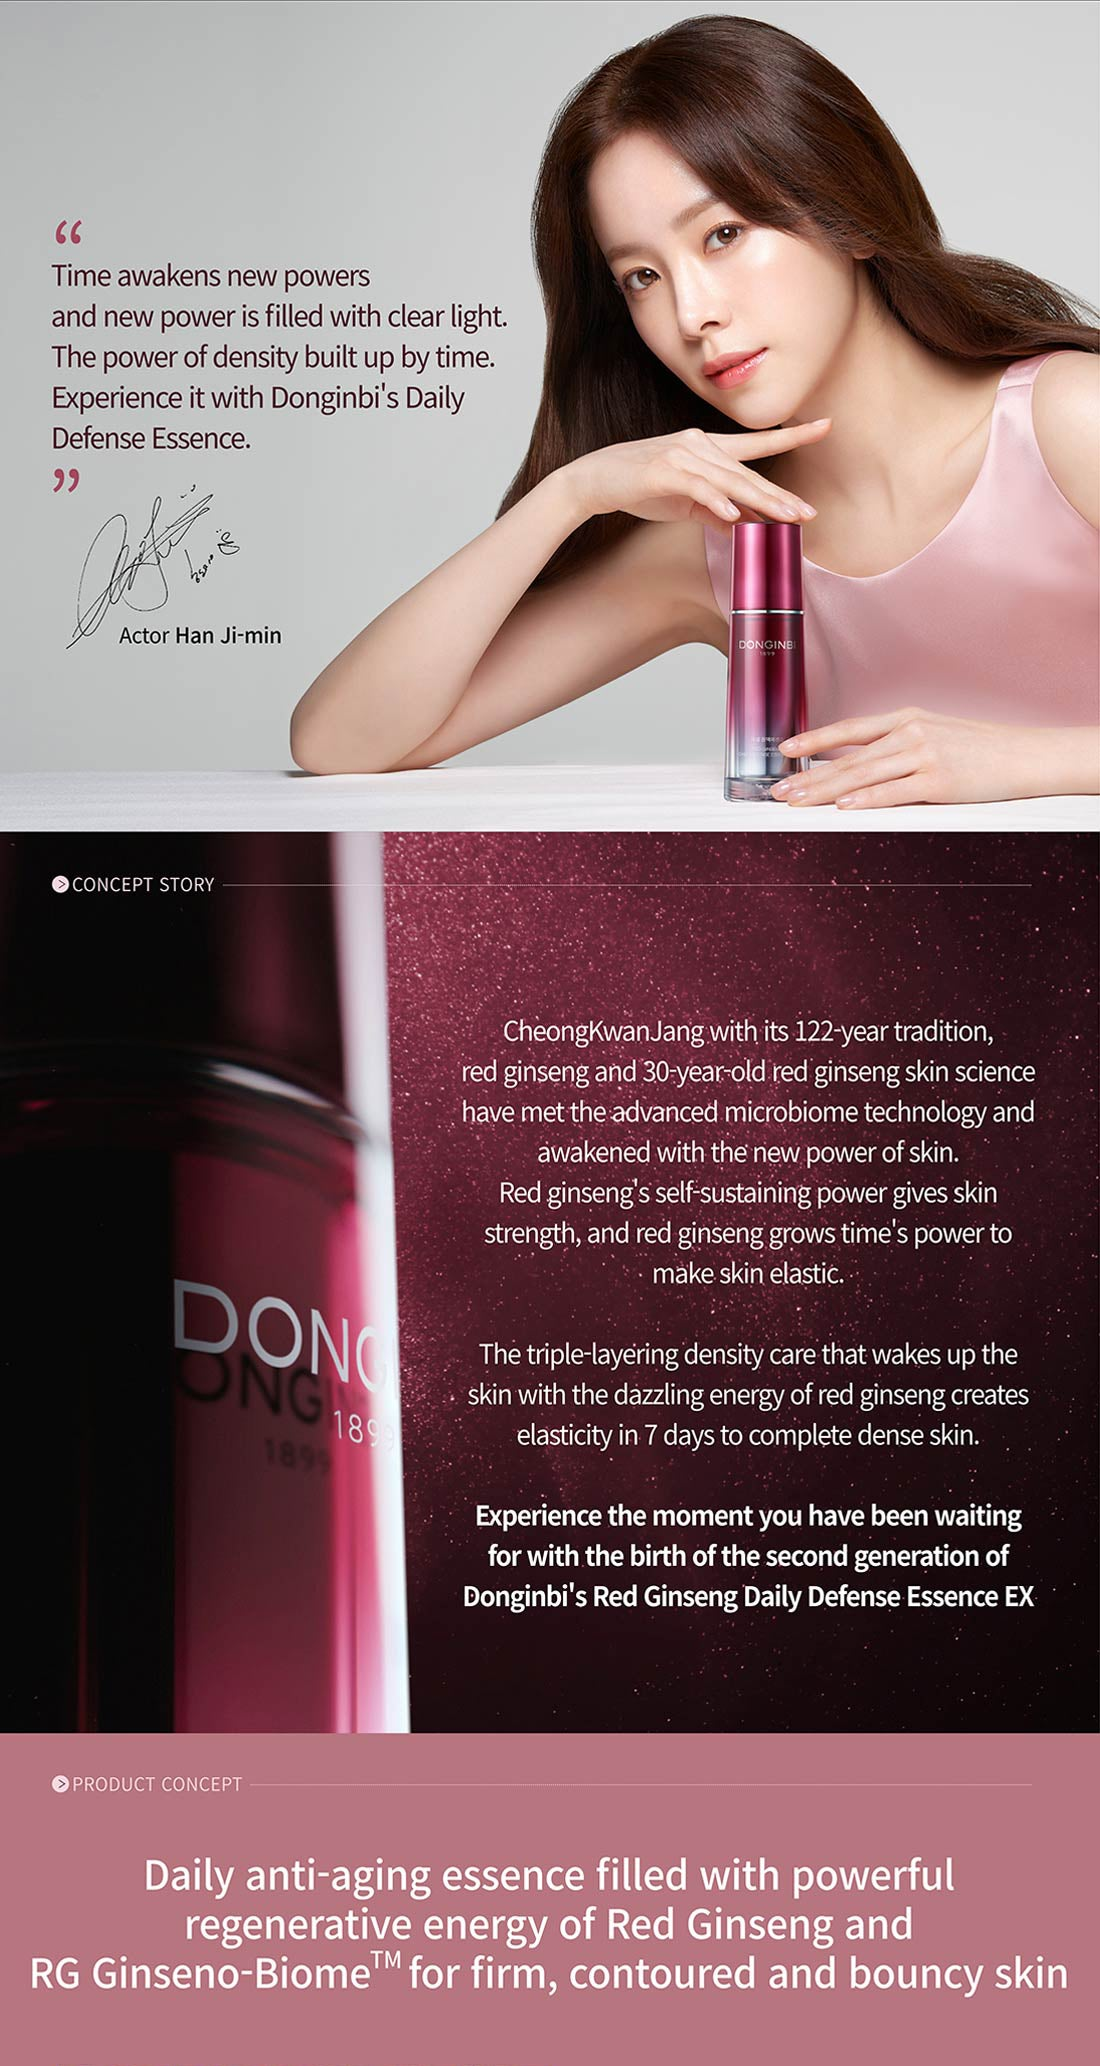 Donginbi Red Ginseng Daily Defense Essence EX